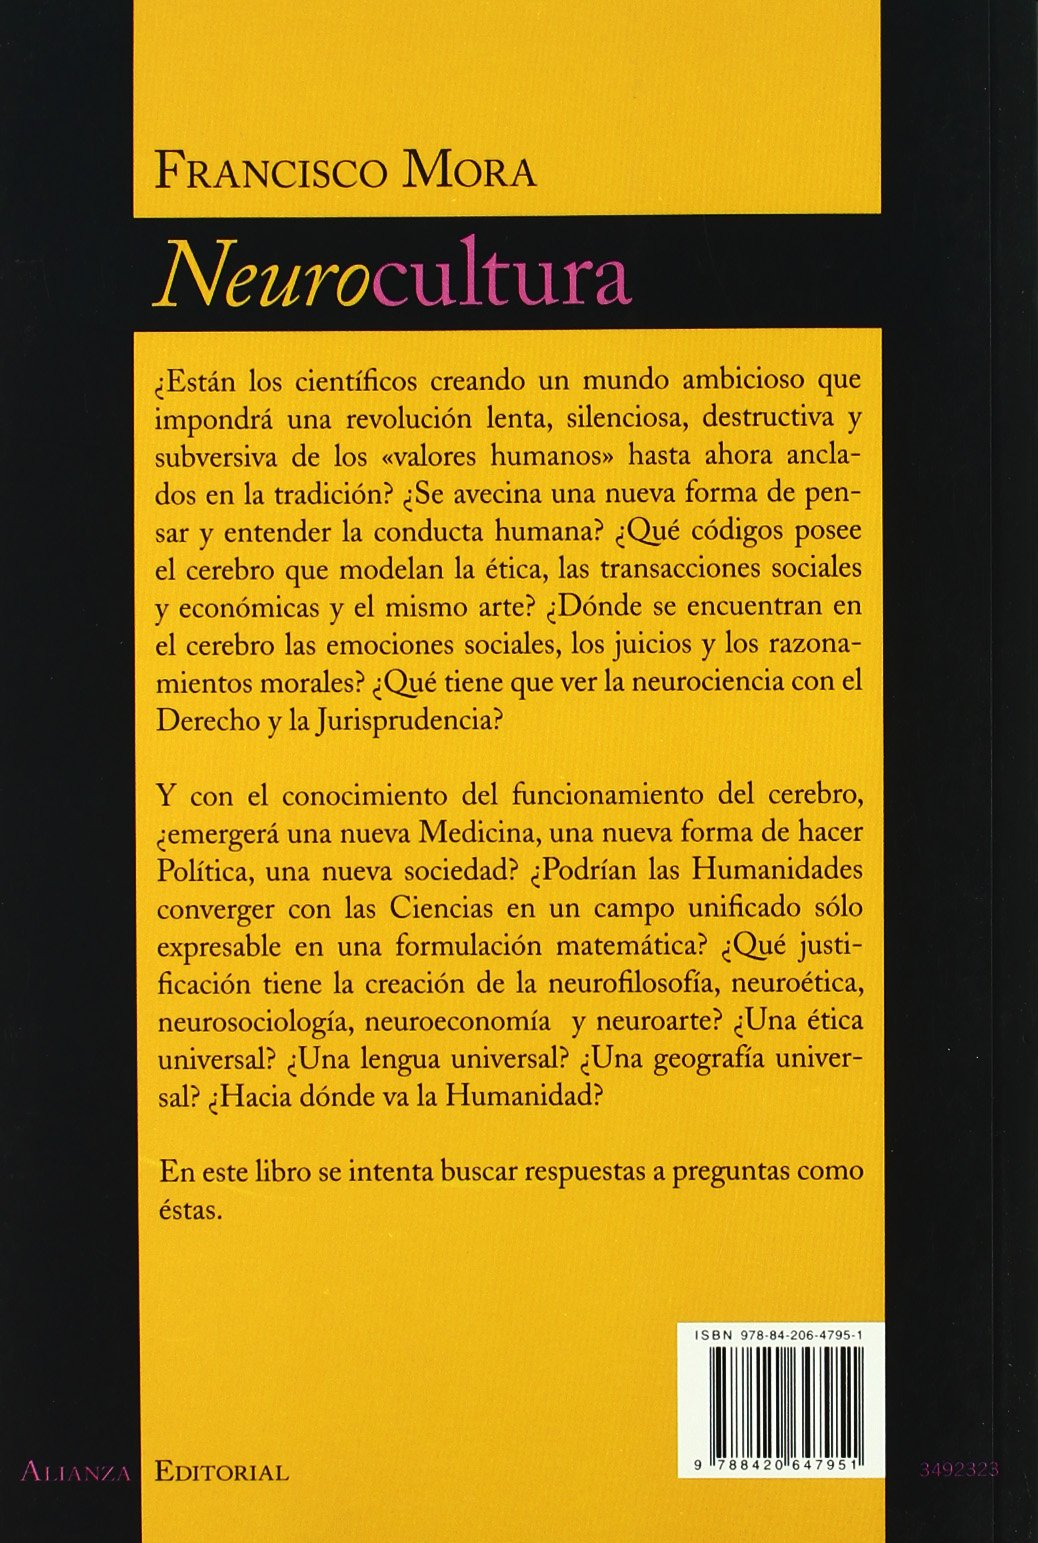 Neurocultura / Neuro Culture: Una Cultura Basada En El Cerebro (Spanish Edition): Francisco Mora: 9788420647951: Amazon.com: Books